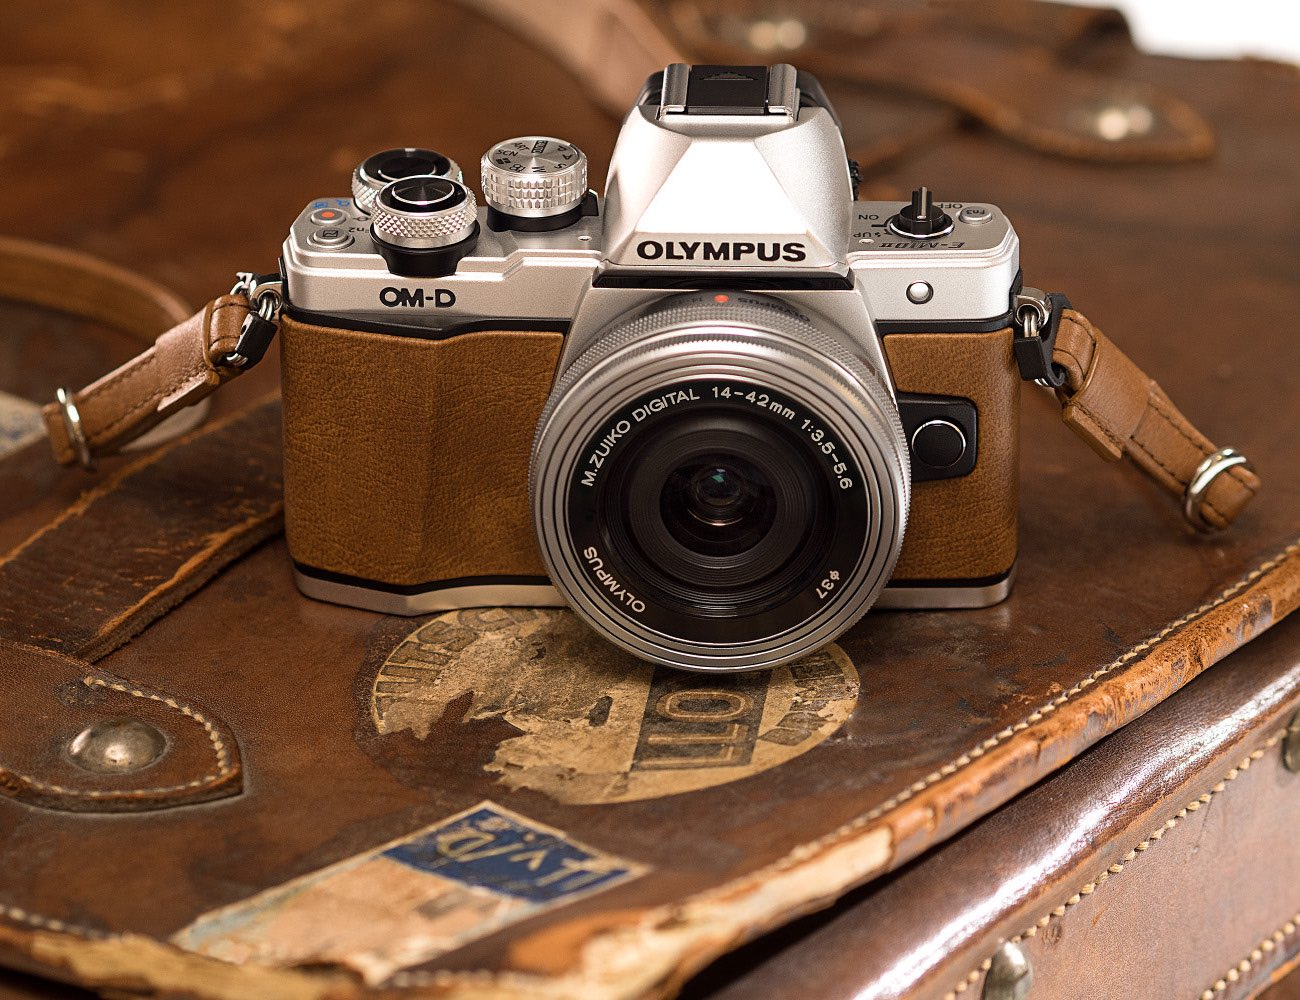 olympus-em10-mark-ii-limited-edition-camera-04